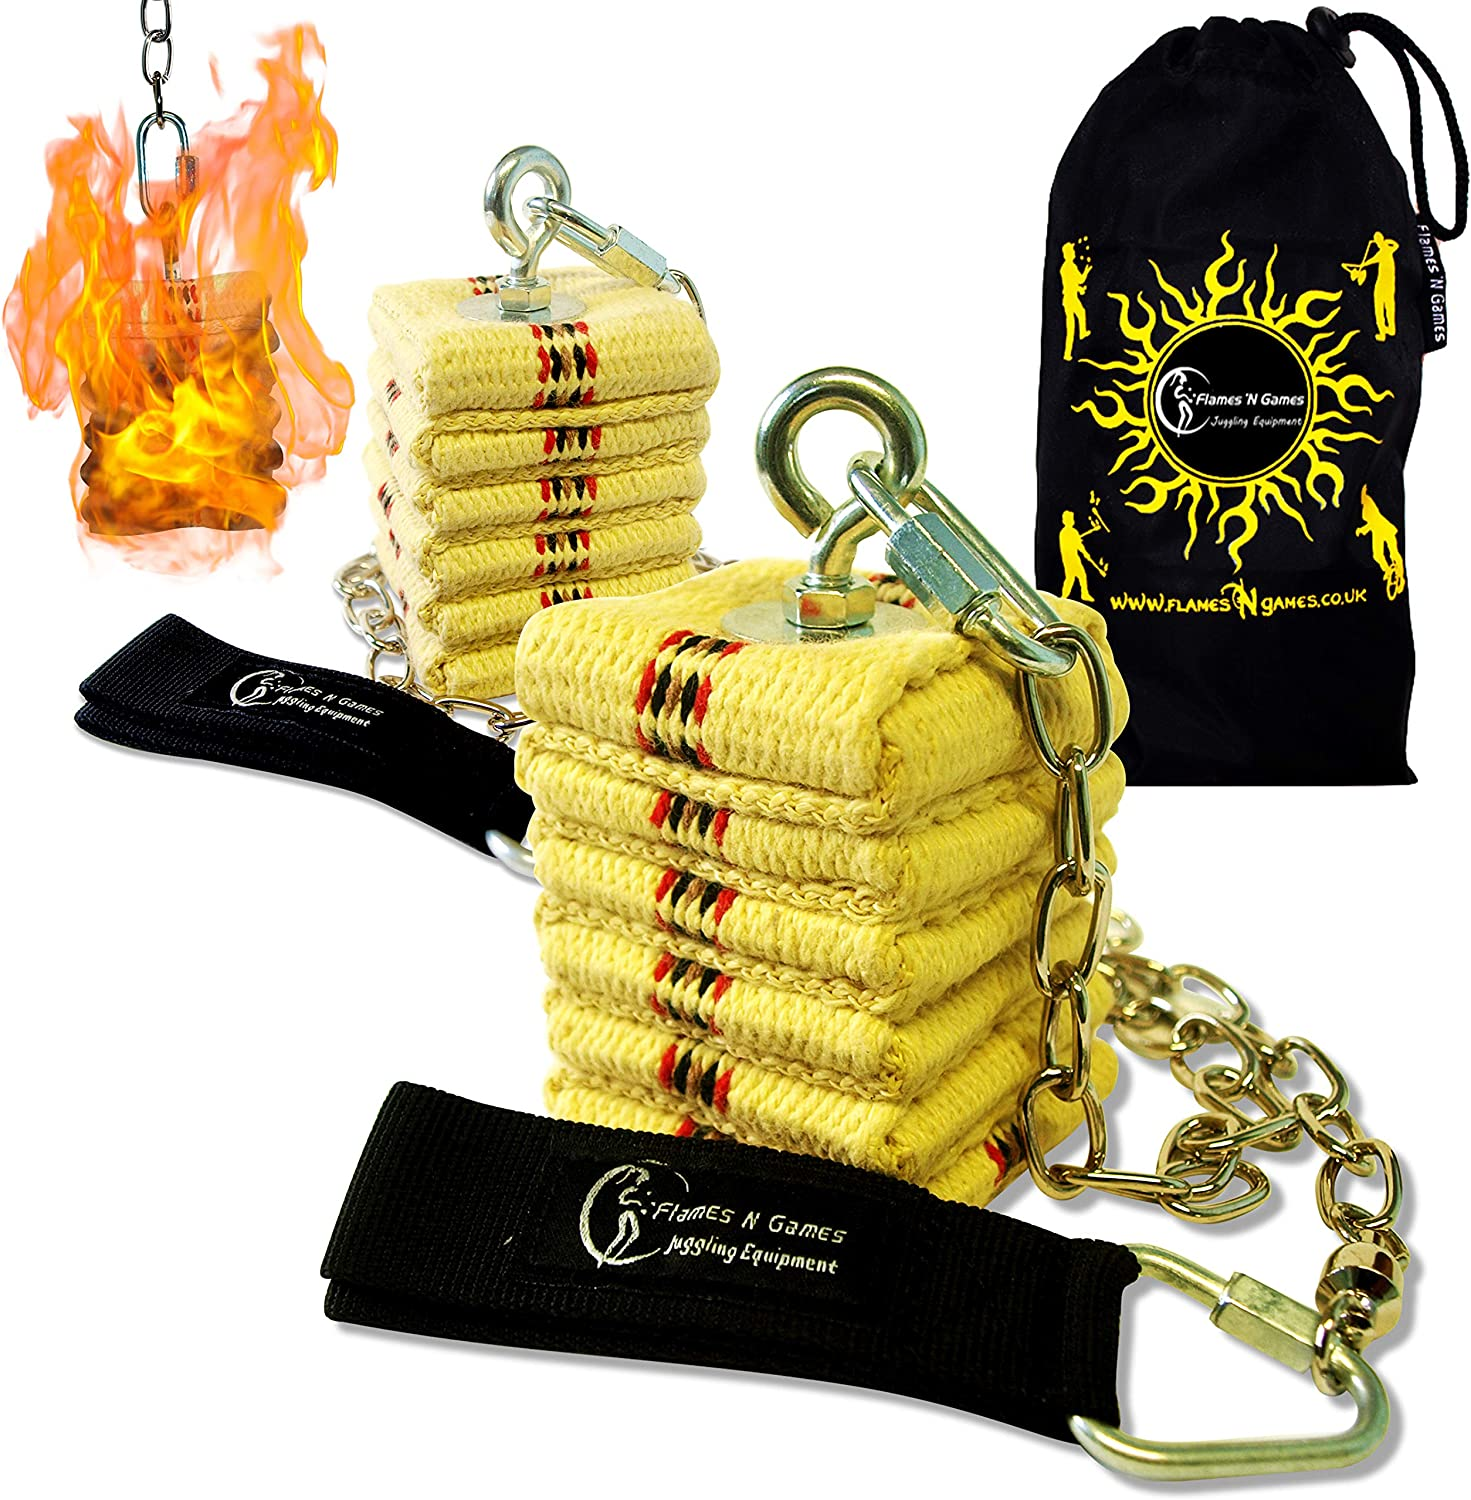 Pro CATHEDRAL kevlar Fire Poi Set + Max 53% OFF 'N Flames Travel Game by Seattle Mall Bag